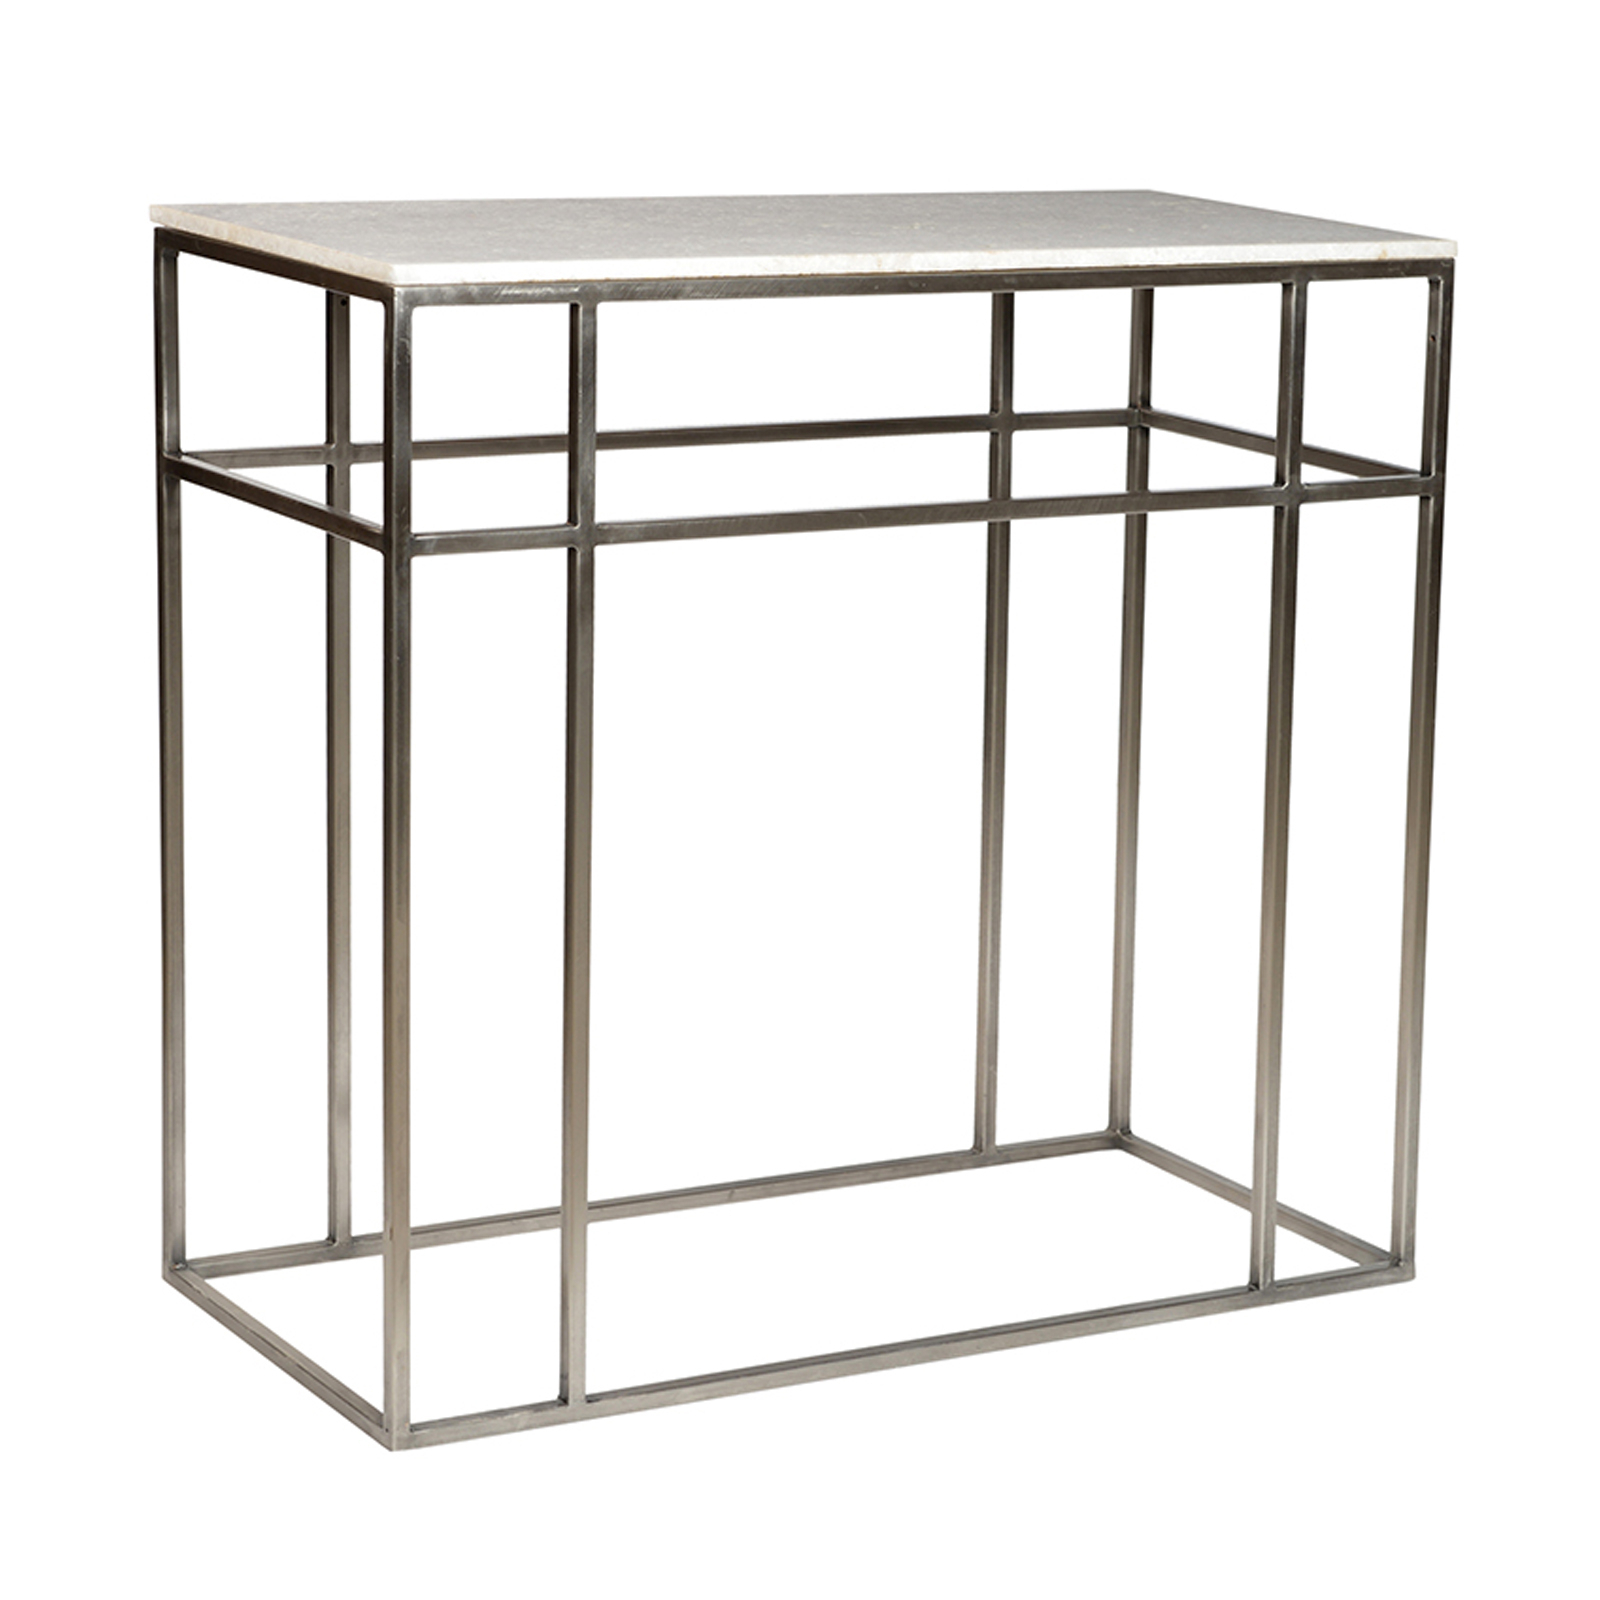 Laney Console Table Furniture | Mix Furniture In Mix Patina Metal Frame Console Tables (View 24 of 30)